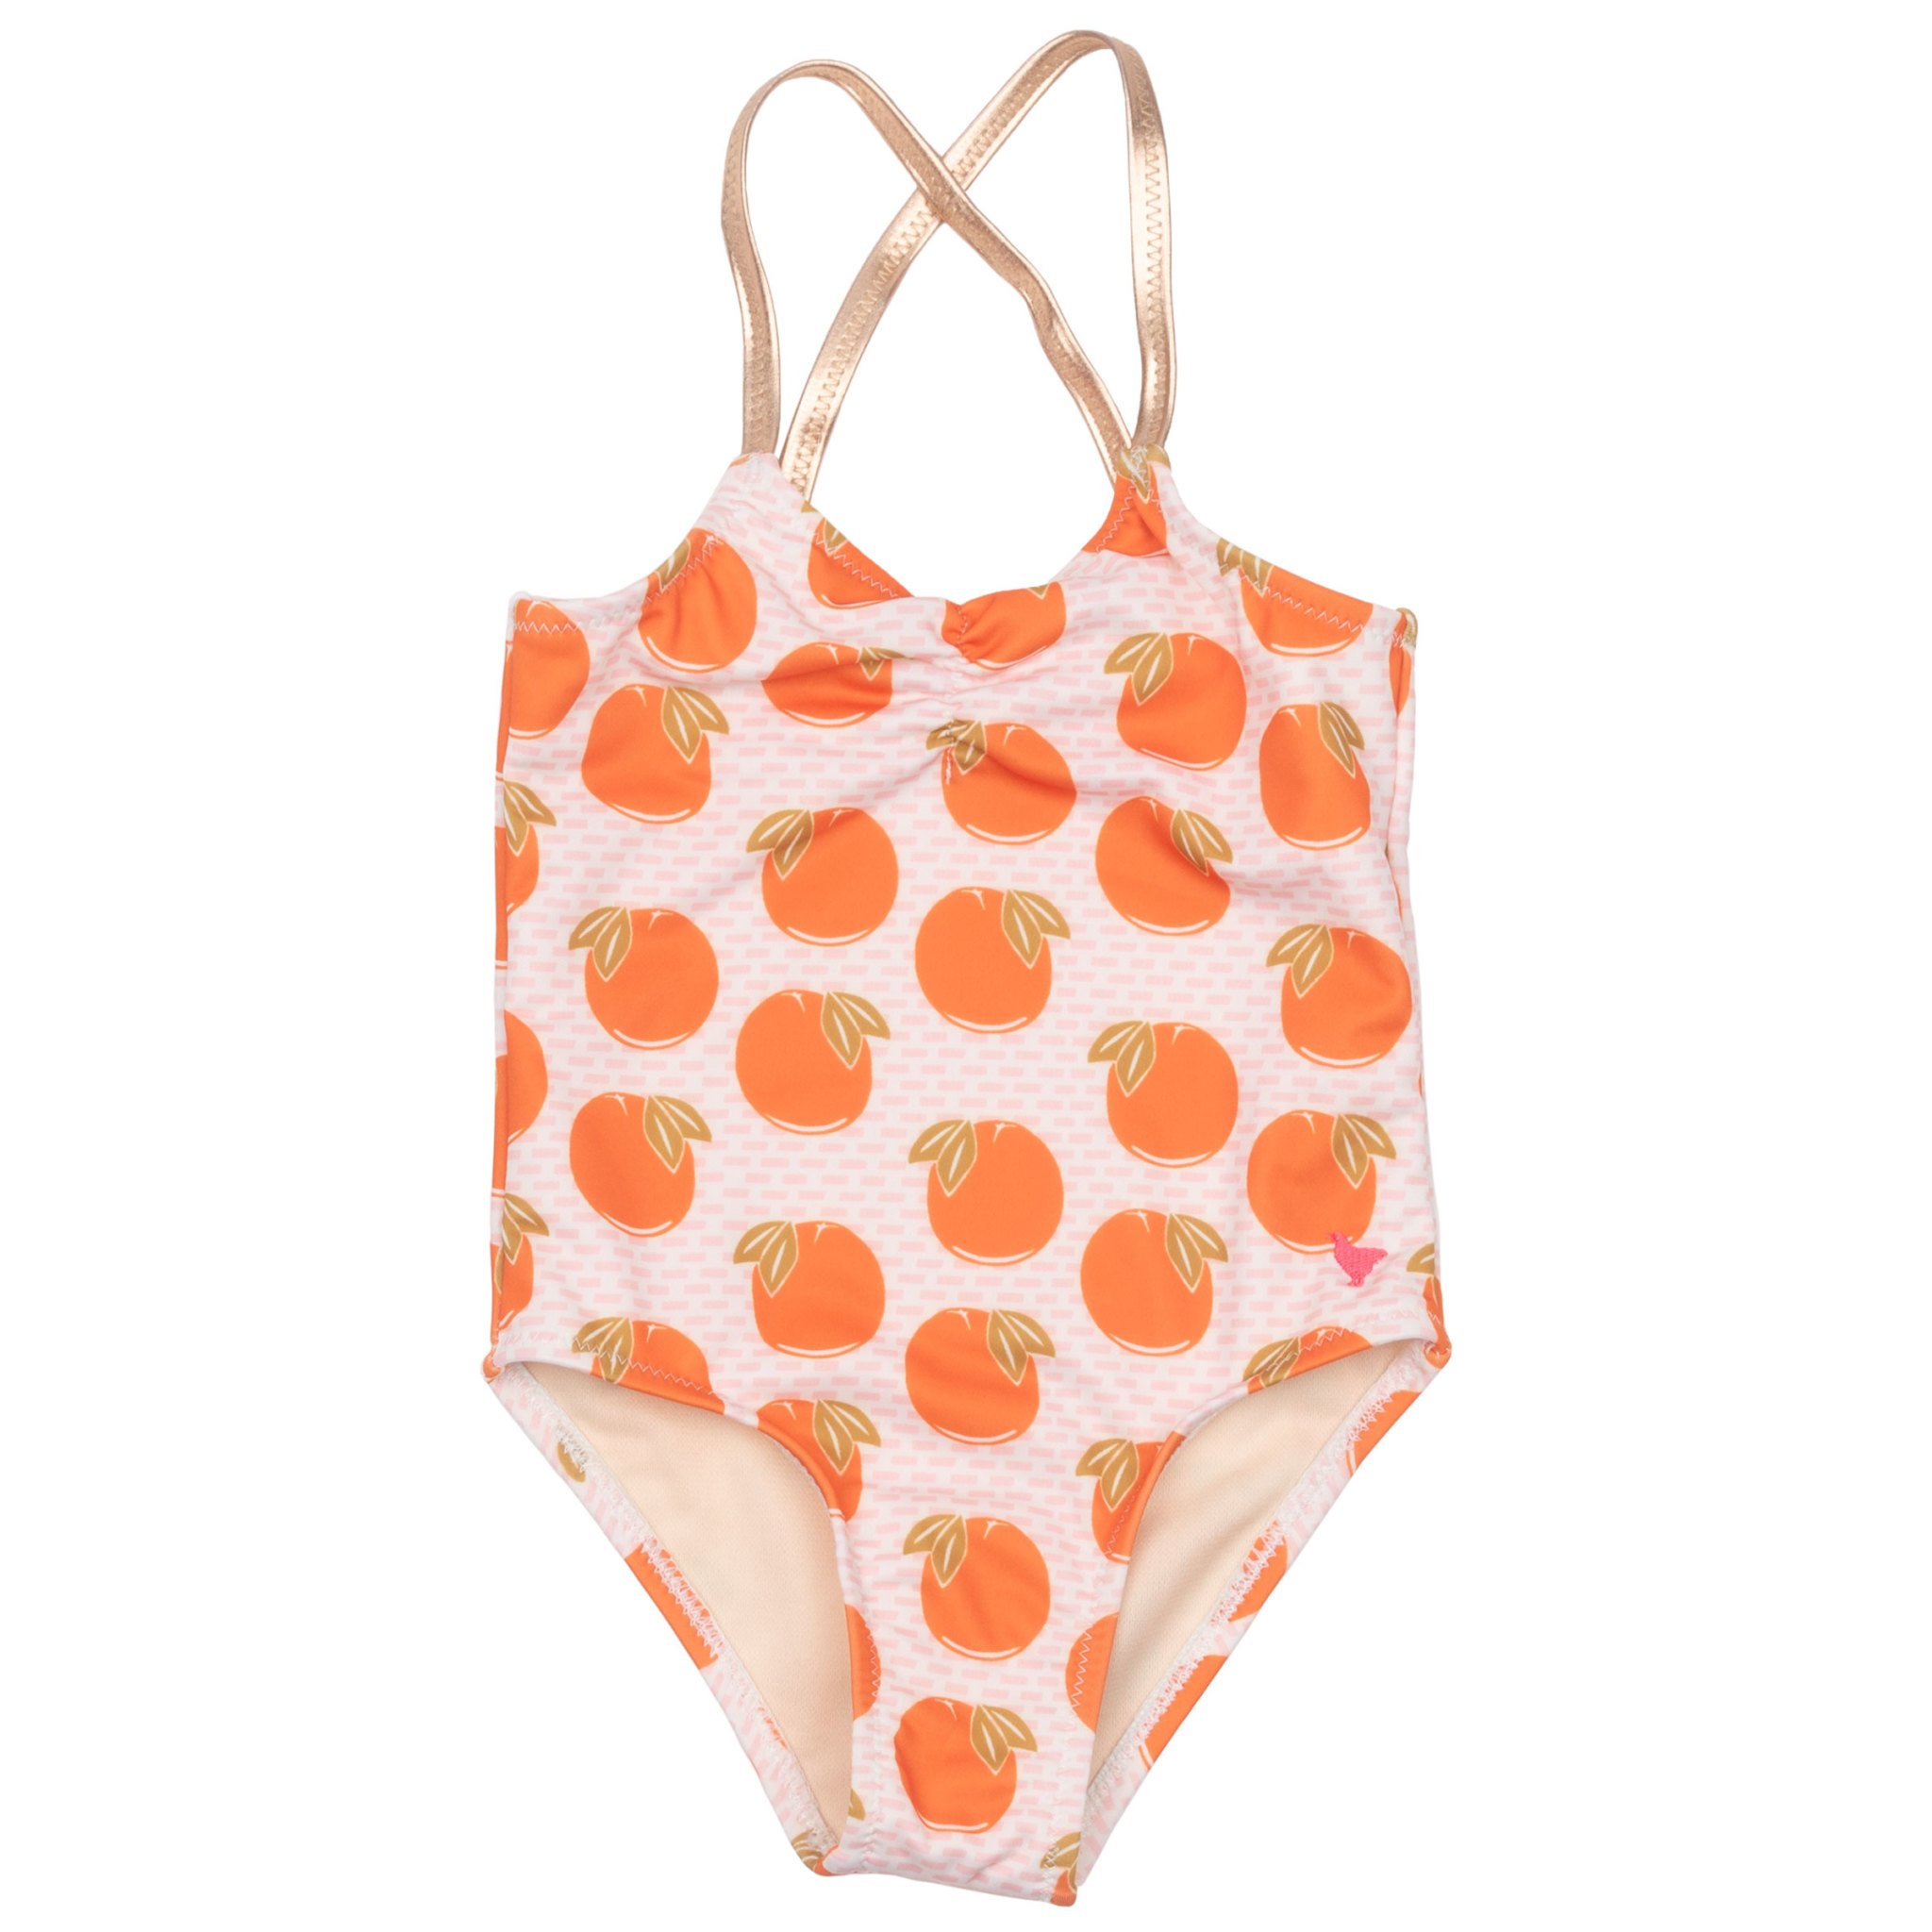 Pink Chicken Belle Swim Suit - Oranges